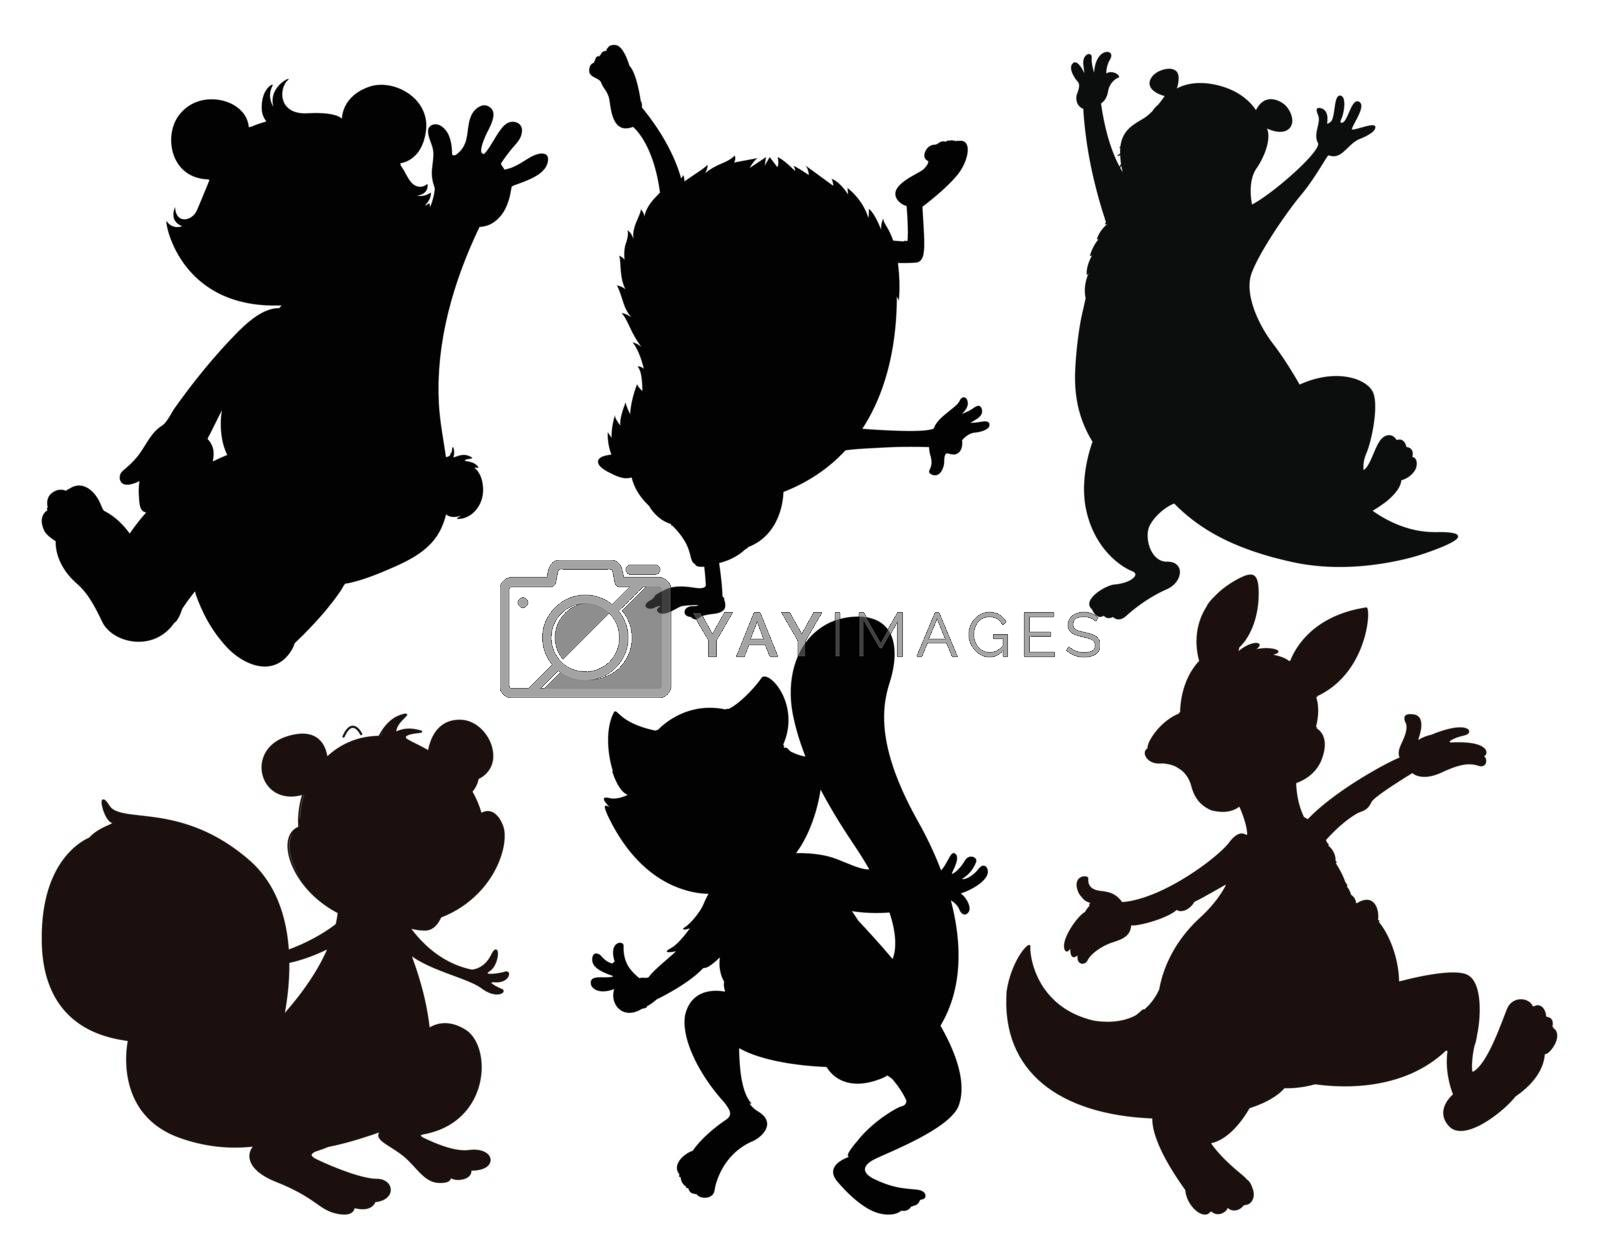 Illustration of the shaded drawings of animals on a white background